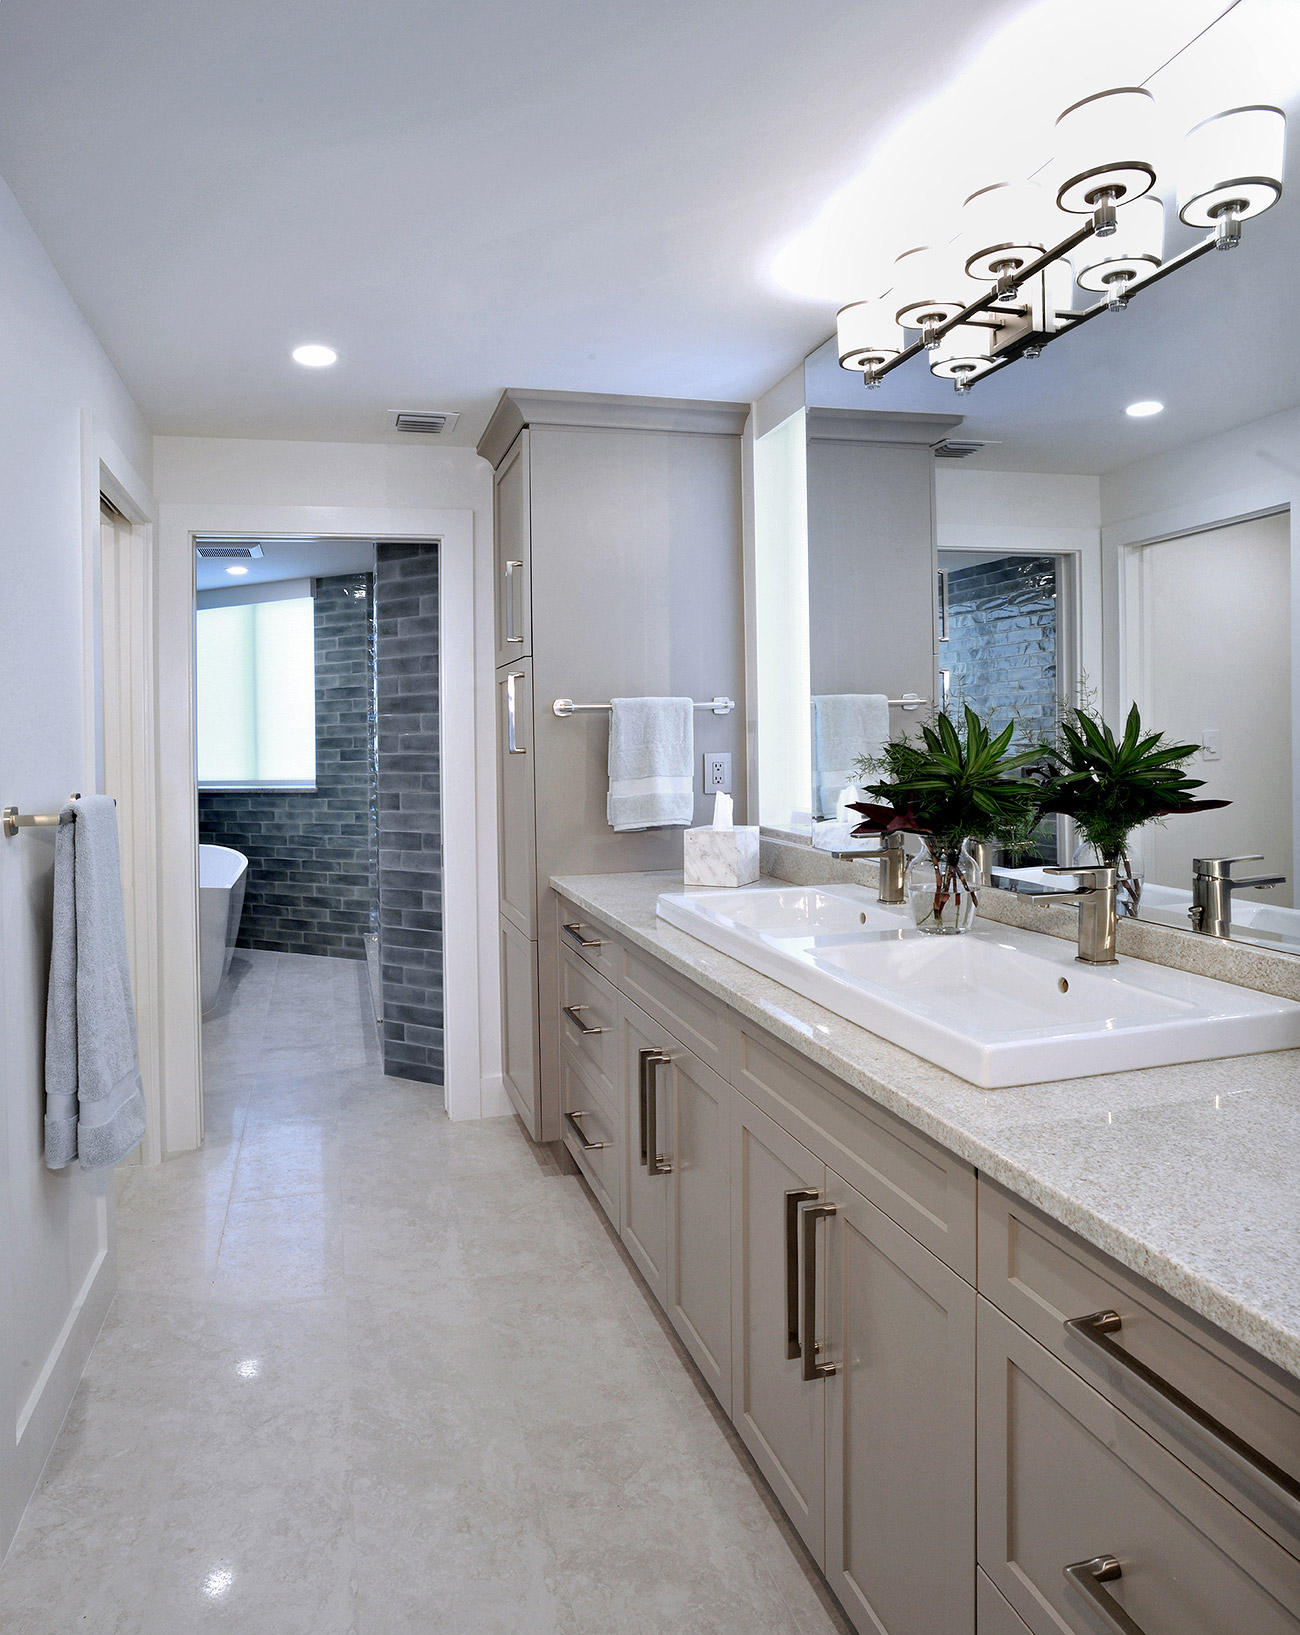 Master bathroom with beige and sandy color palette for shaker style cabinets and double vanity sinks in porcelain white